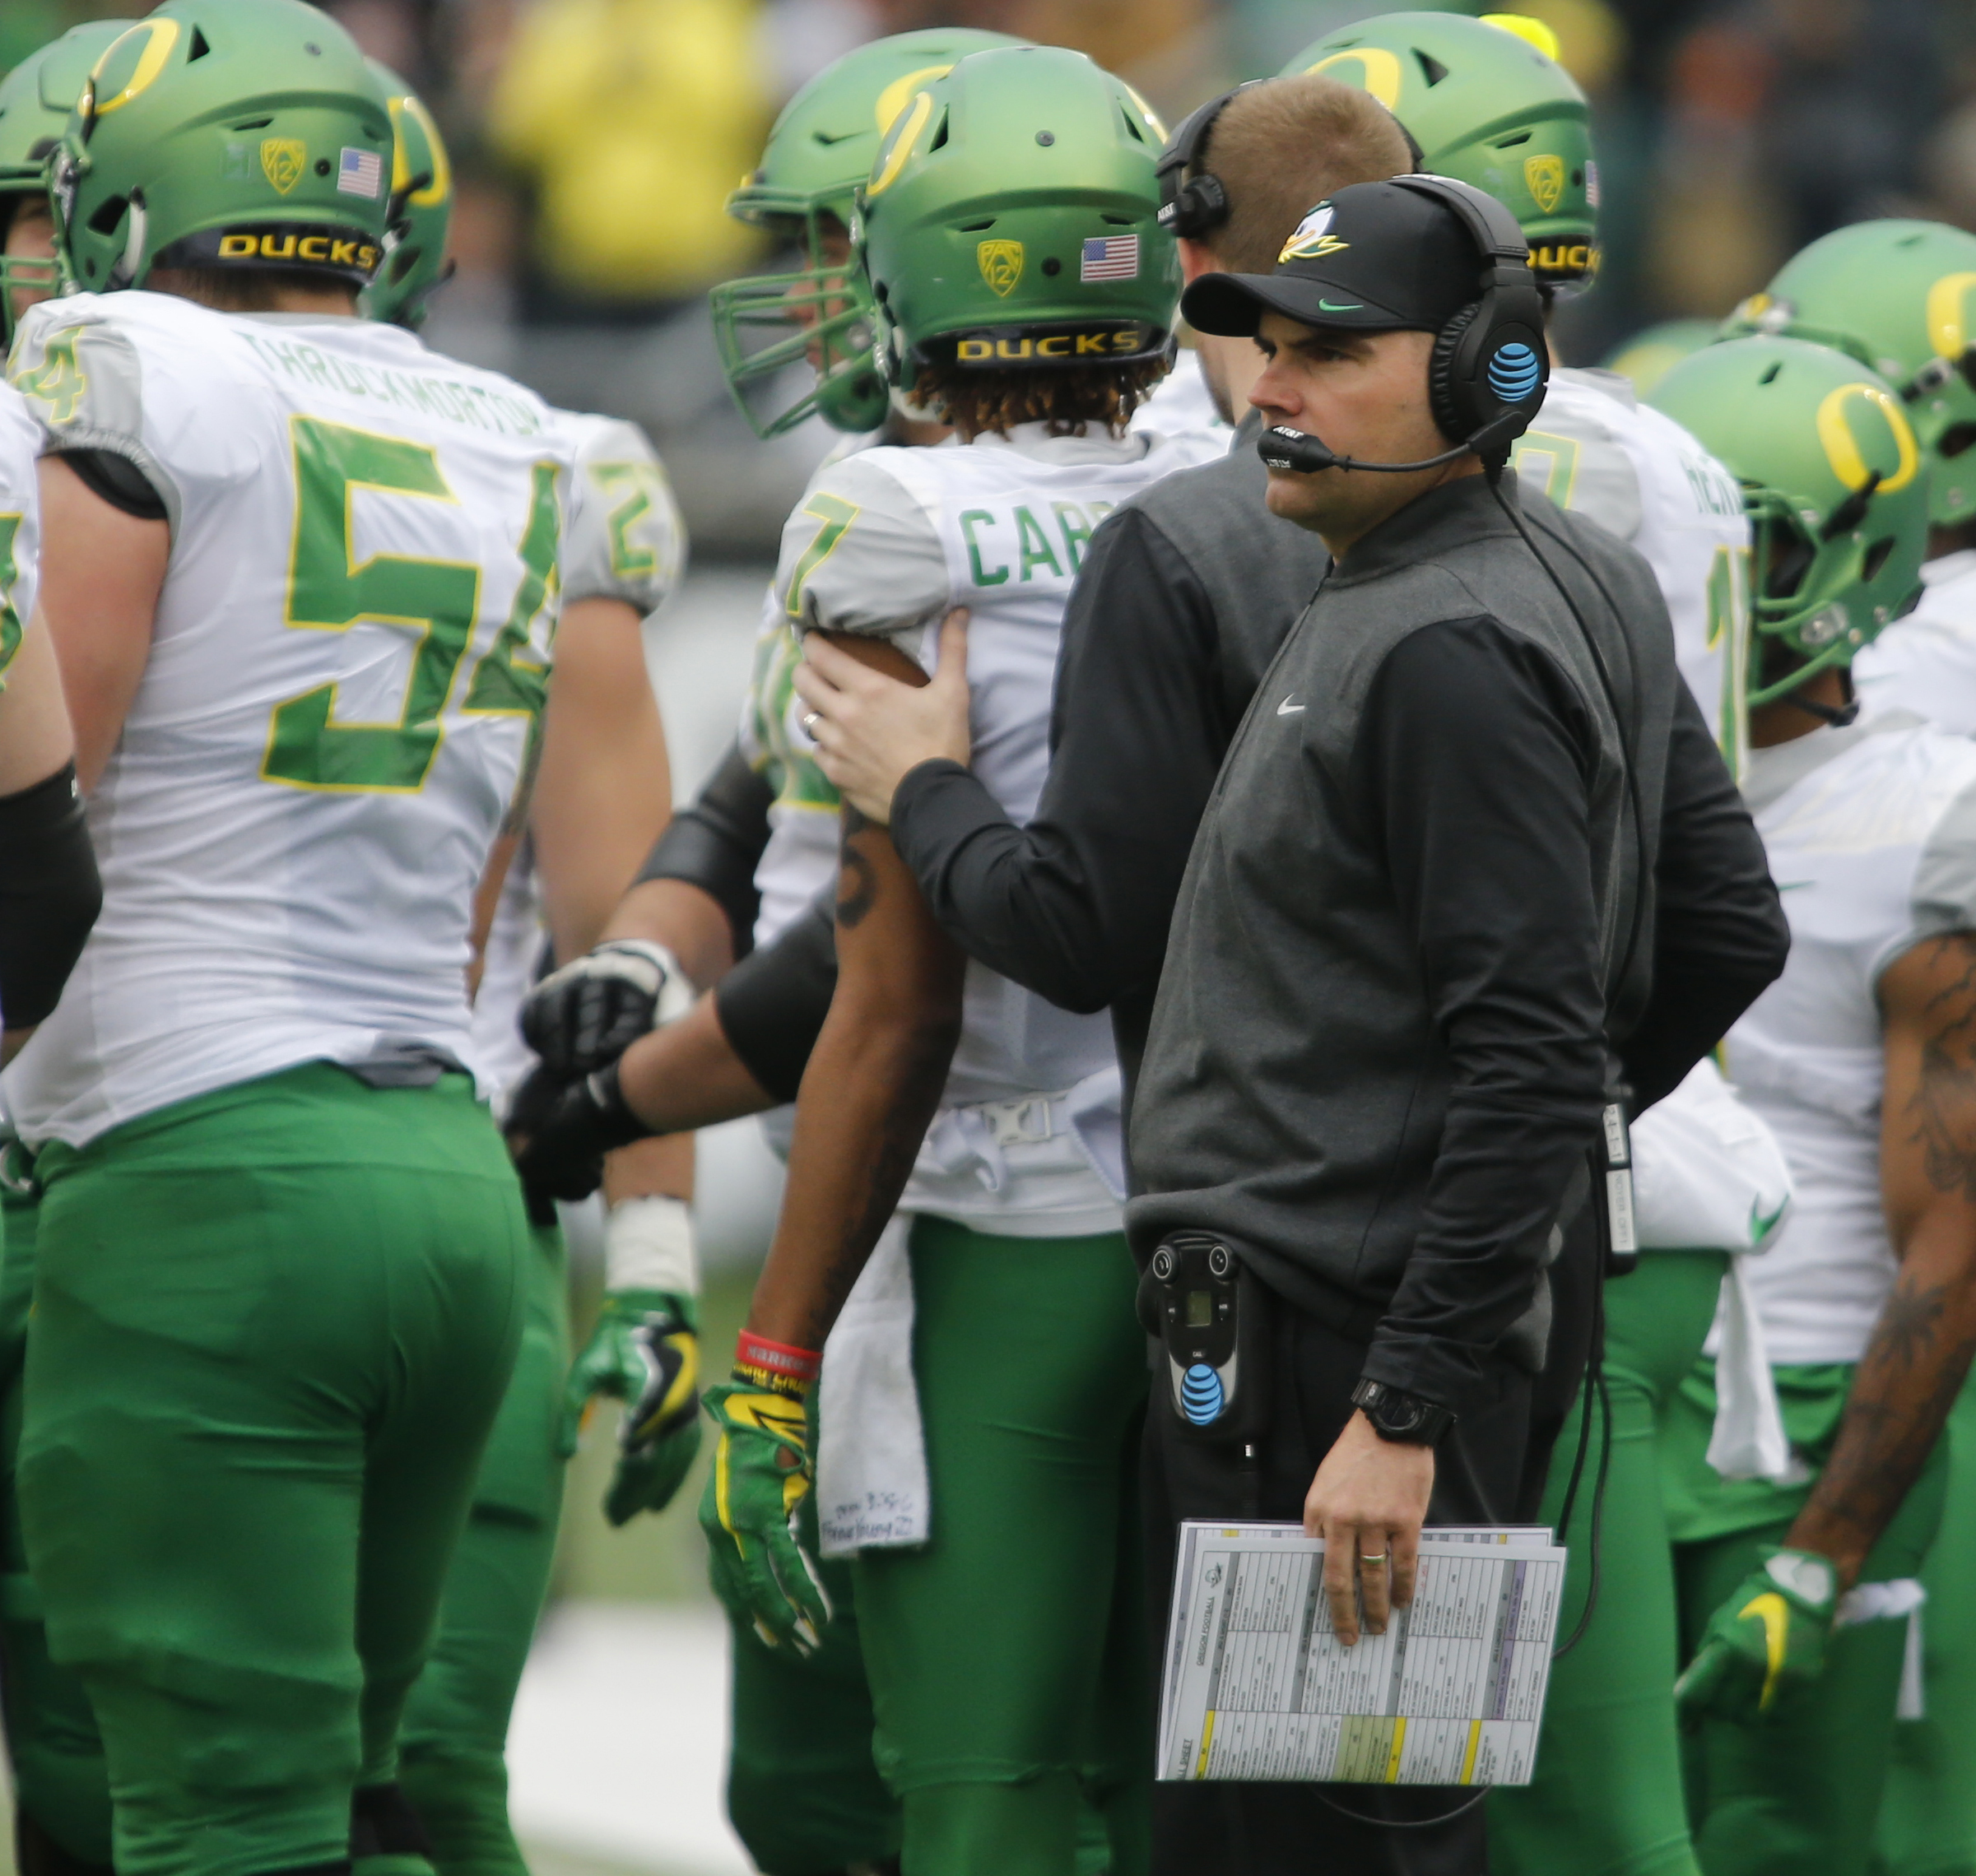 Oregon head coach Mark Helfrich looks on in the first half an NCAA college football game against Oregon State, in Corvallis, Ore., Saturday Nov. 26, 2016. (AP Photo/Timothy J. Gonzalez)